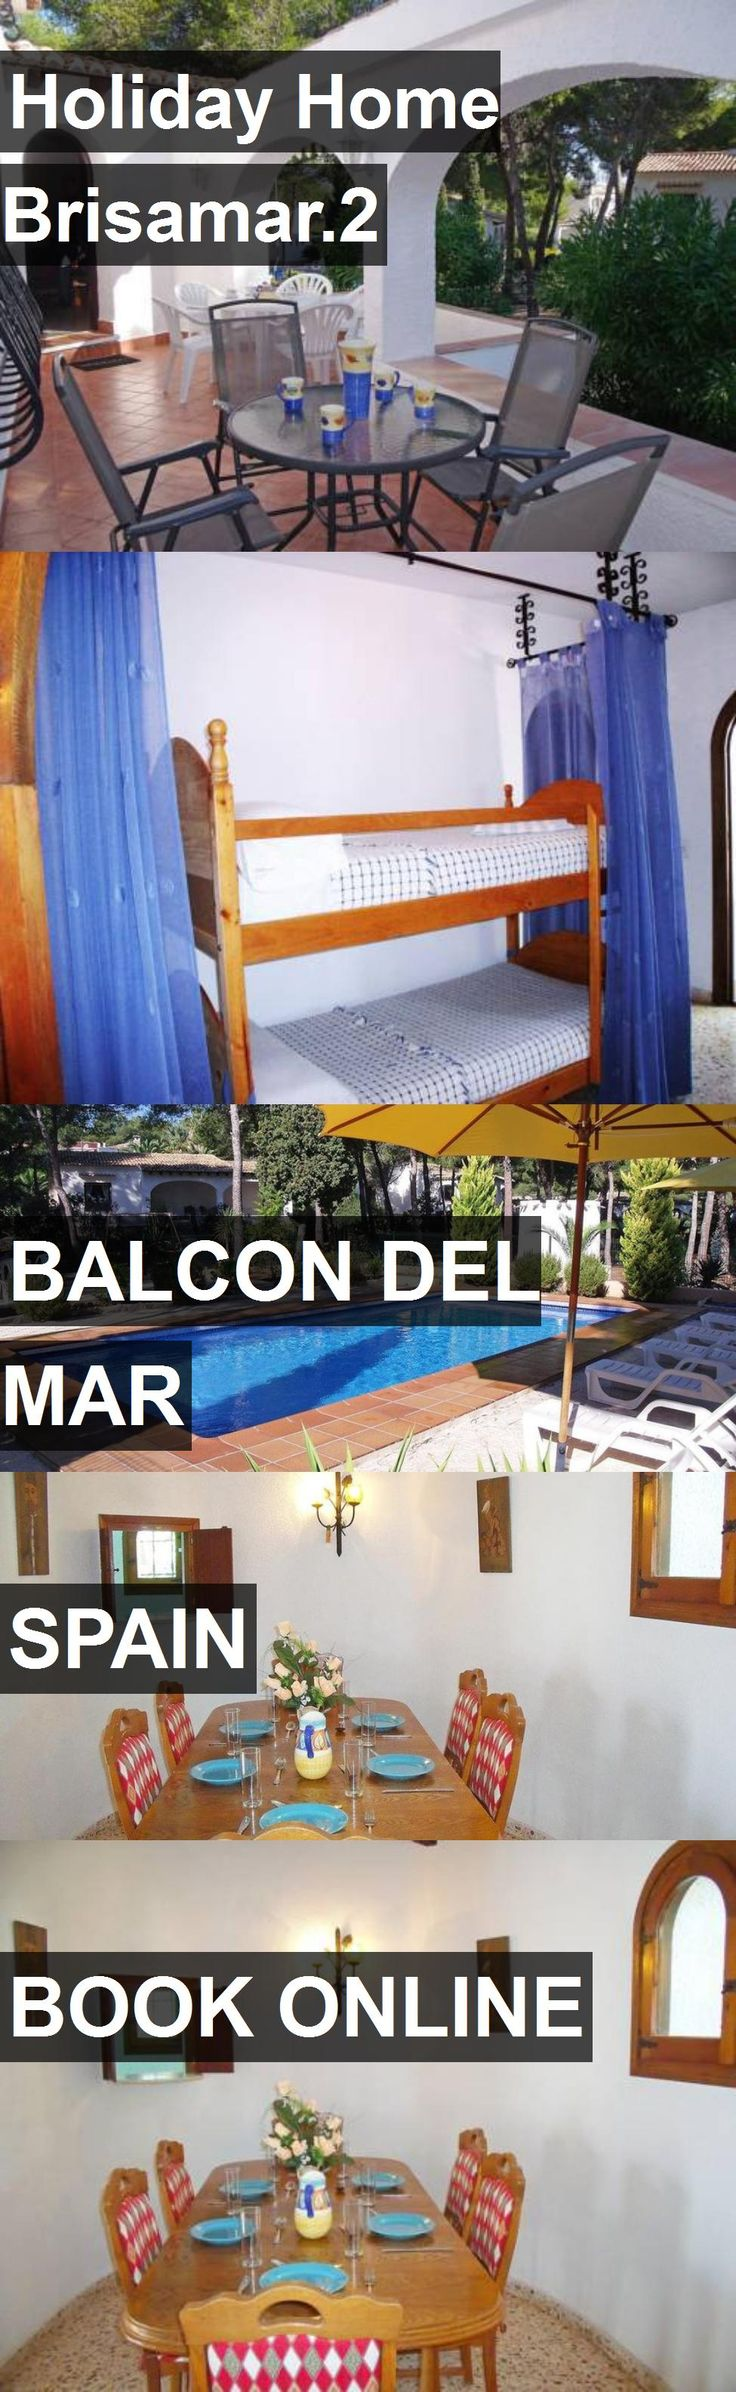 Hotel Holiday Home Brisamar.2 in Balcon del Mar, Spain. For more information, photos, reviews and best prices please follow the link. #Spain #BalcondelMar #travel #vacation #hotel